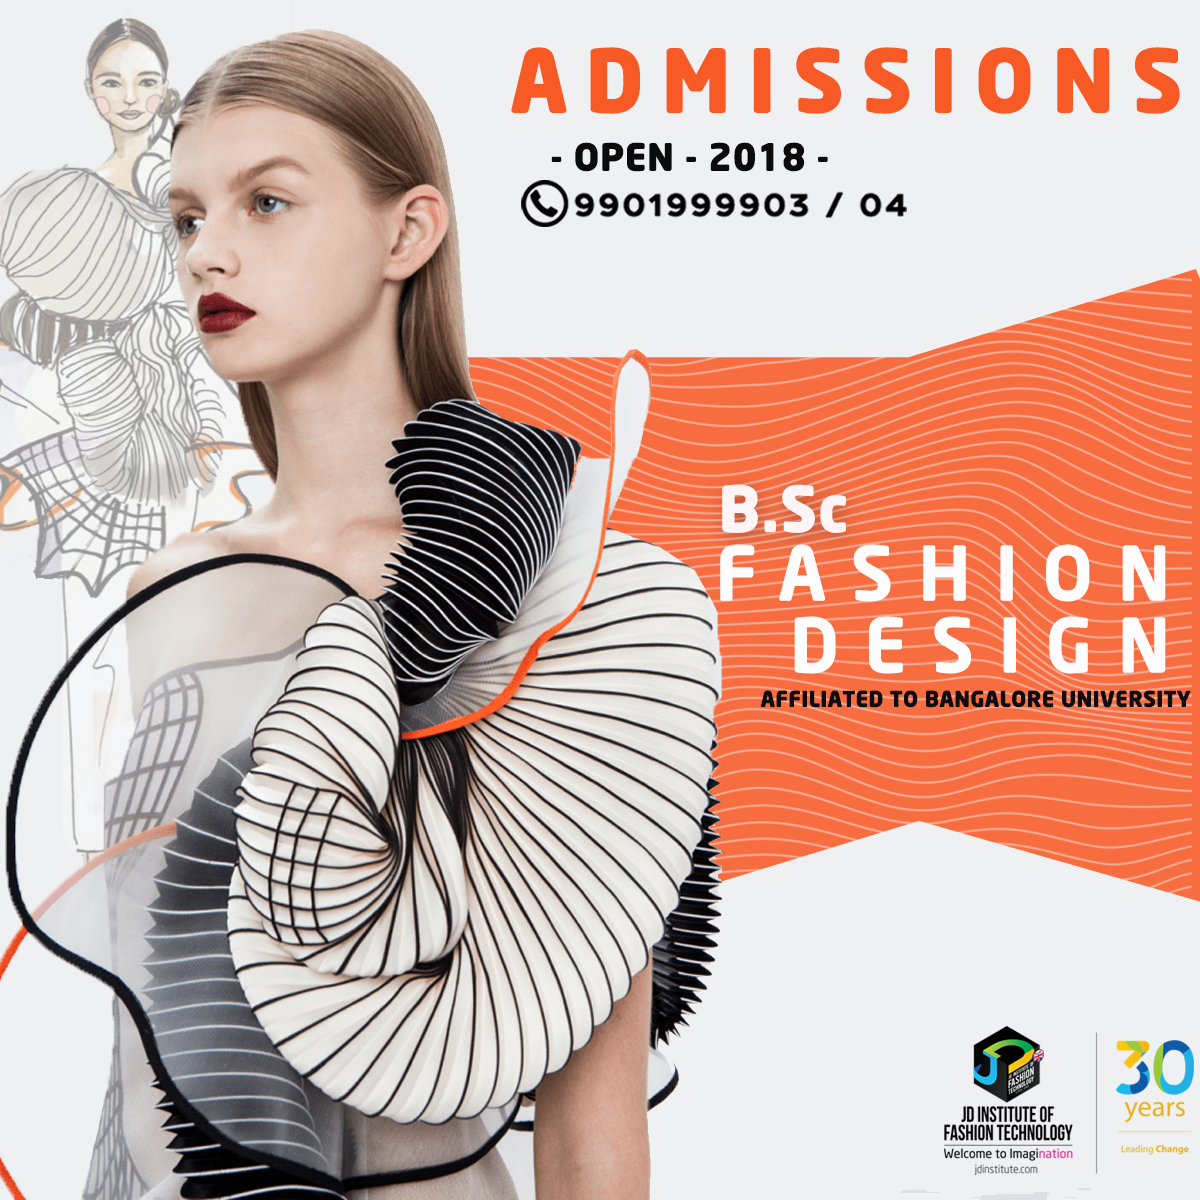 B Sc Fashion Design Programs Are Open At Jd Institute Of Fashion Technology Call Our Counsellors Today On 99 Technology Fashion Fashion Courses Fashion Design